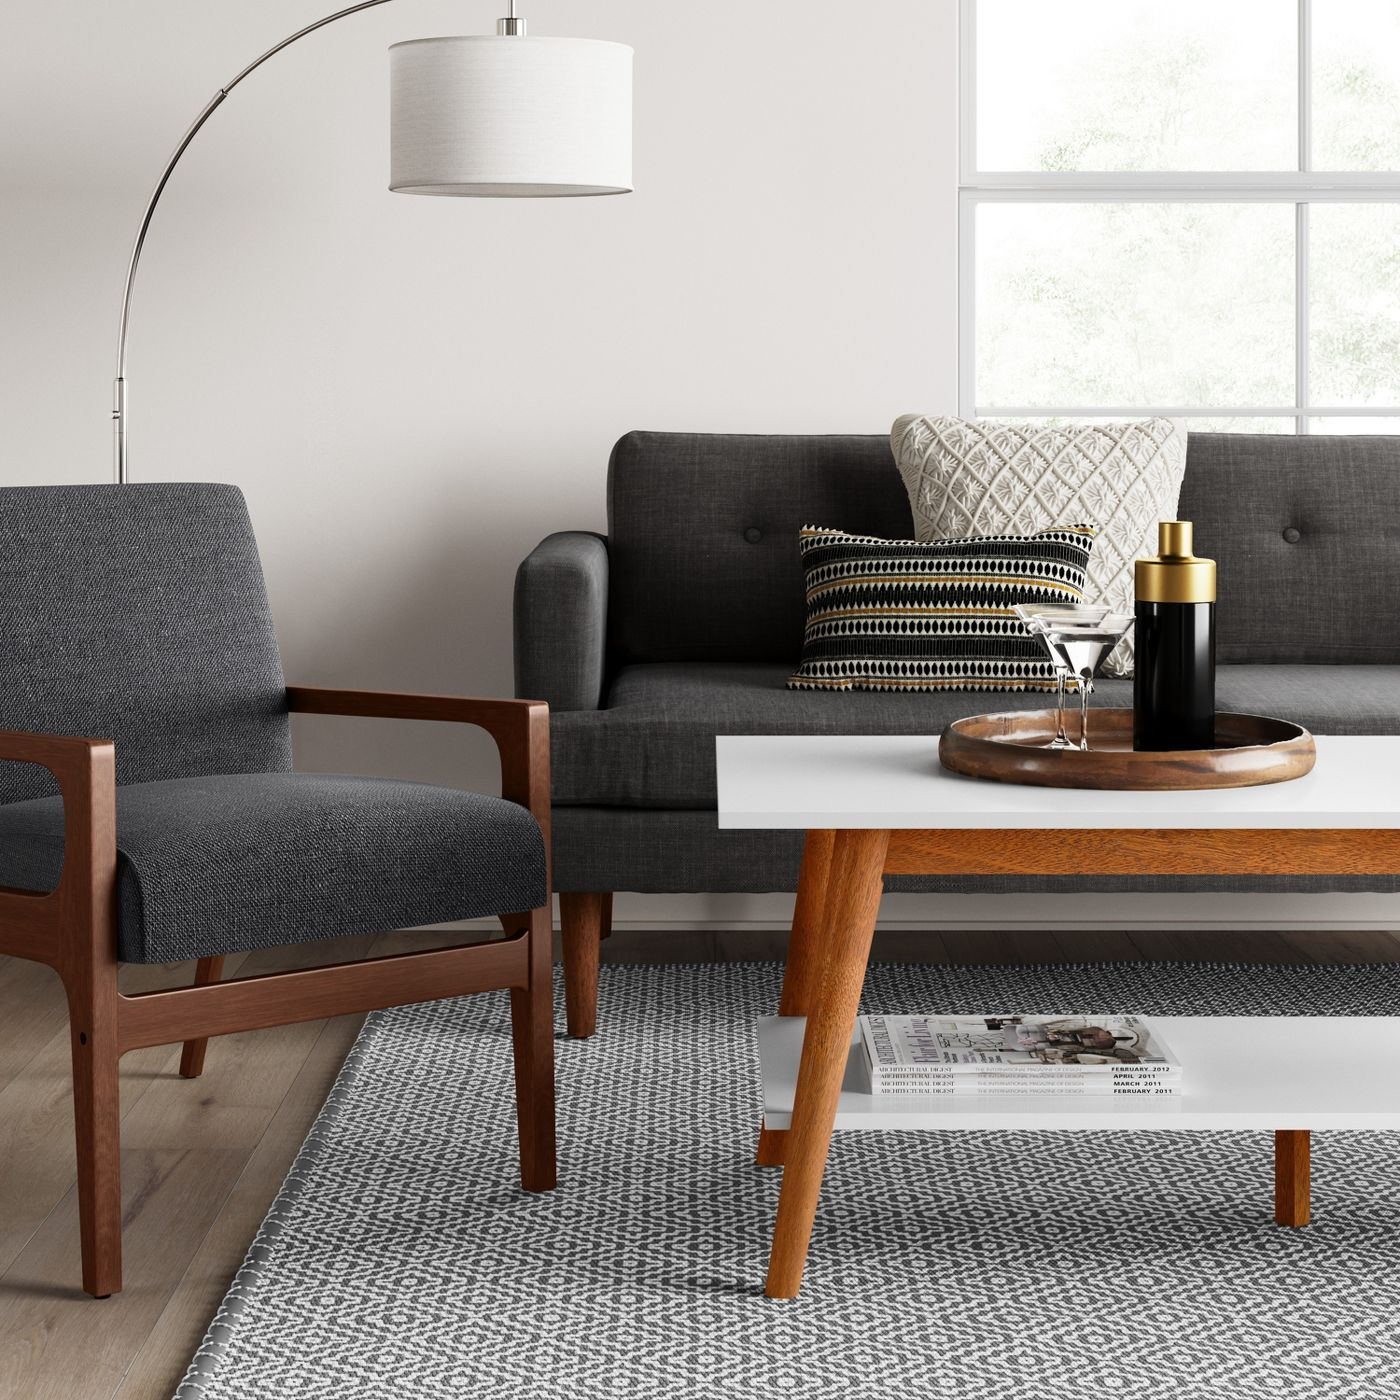 Magnificent The Best Labor Day Deals At Target Curbed Bralicious Painted Fabric Chair Ideas Braliciousco